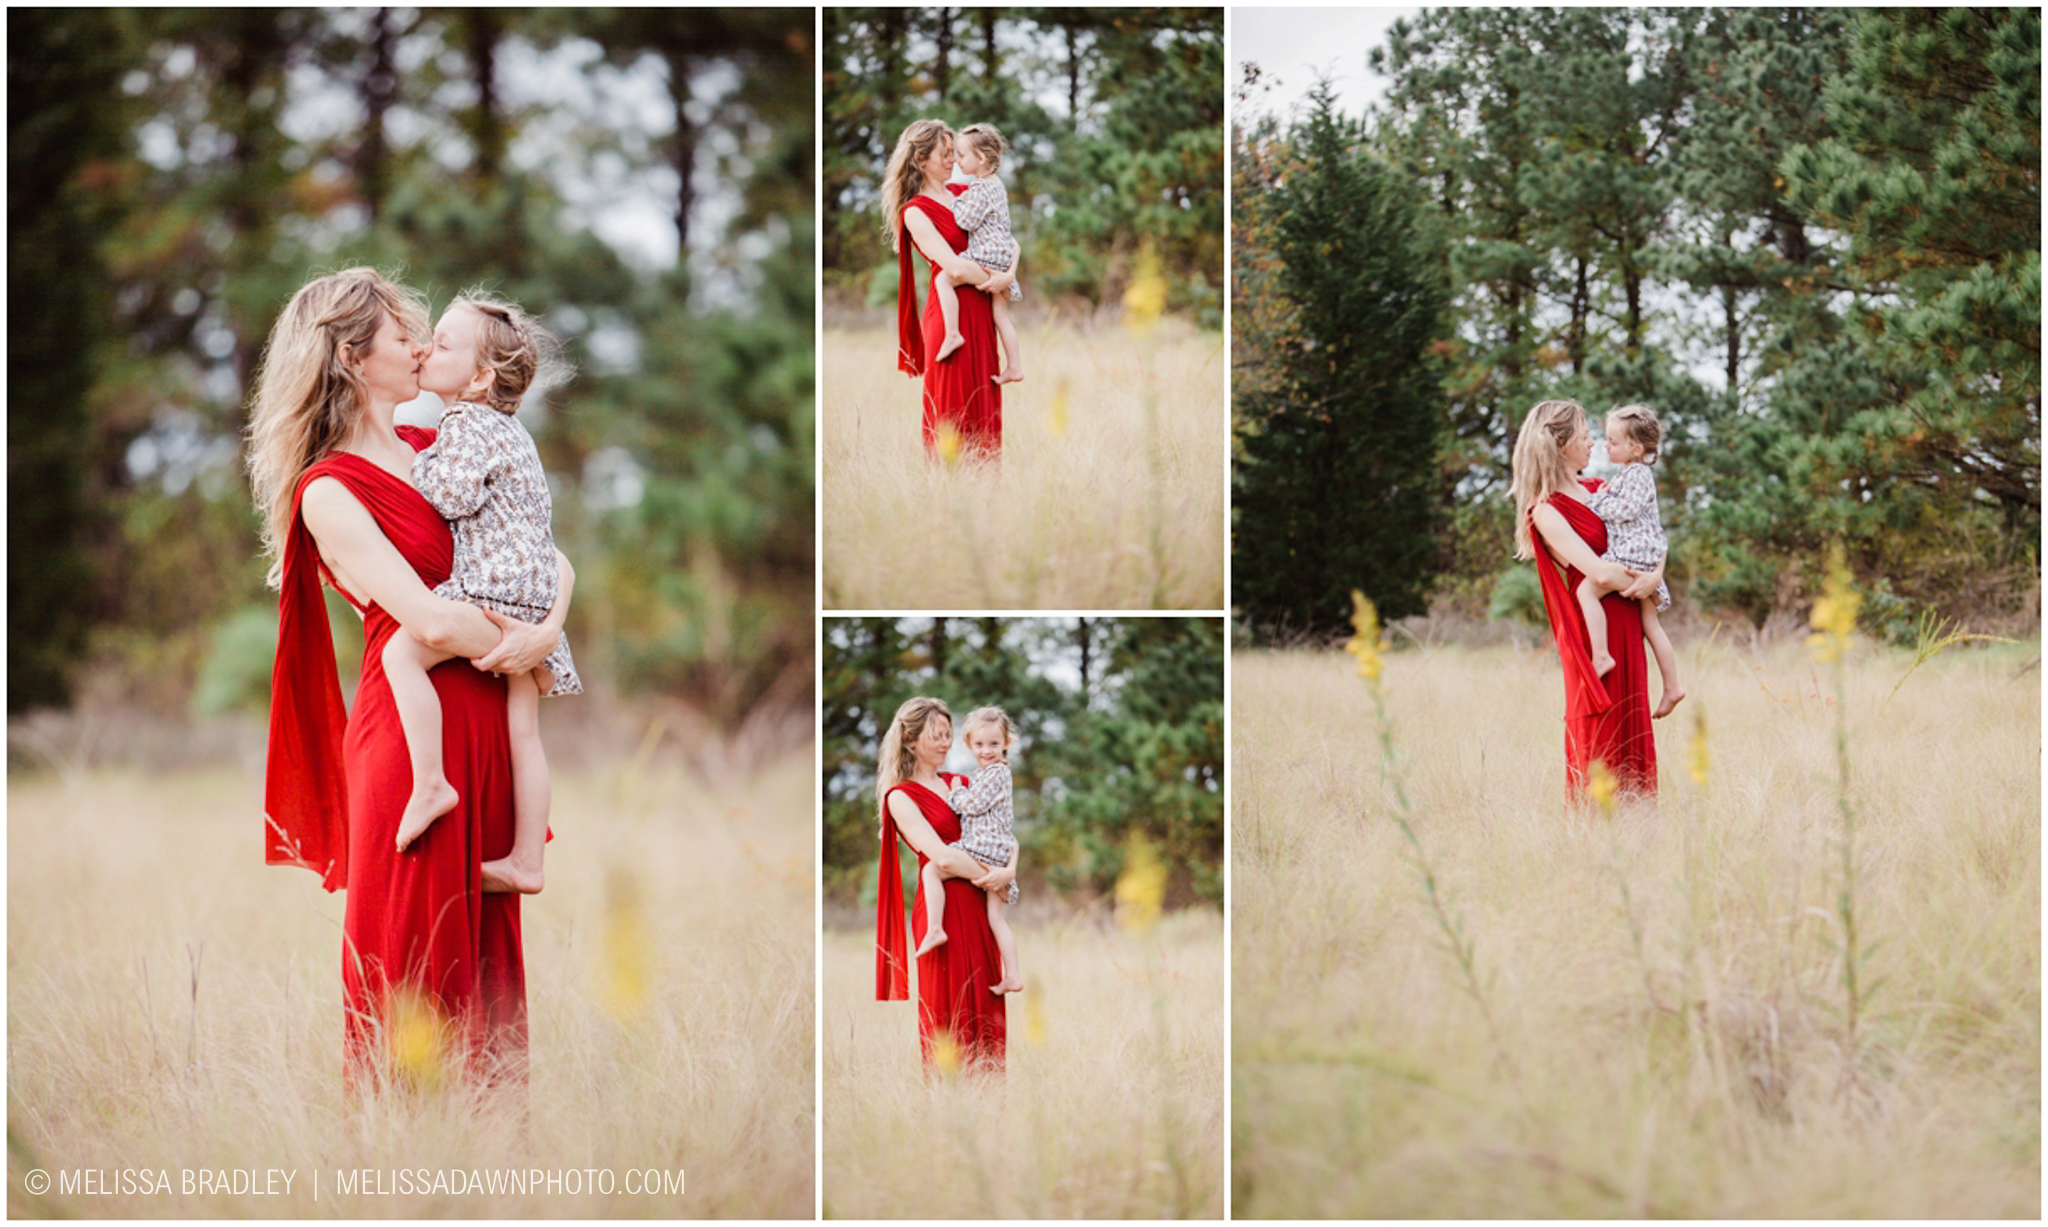 Virginia Beach Family Mother Daughter Photographer_Melissa Dawn Photography_027.jpg